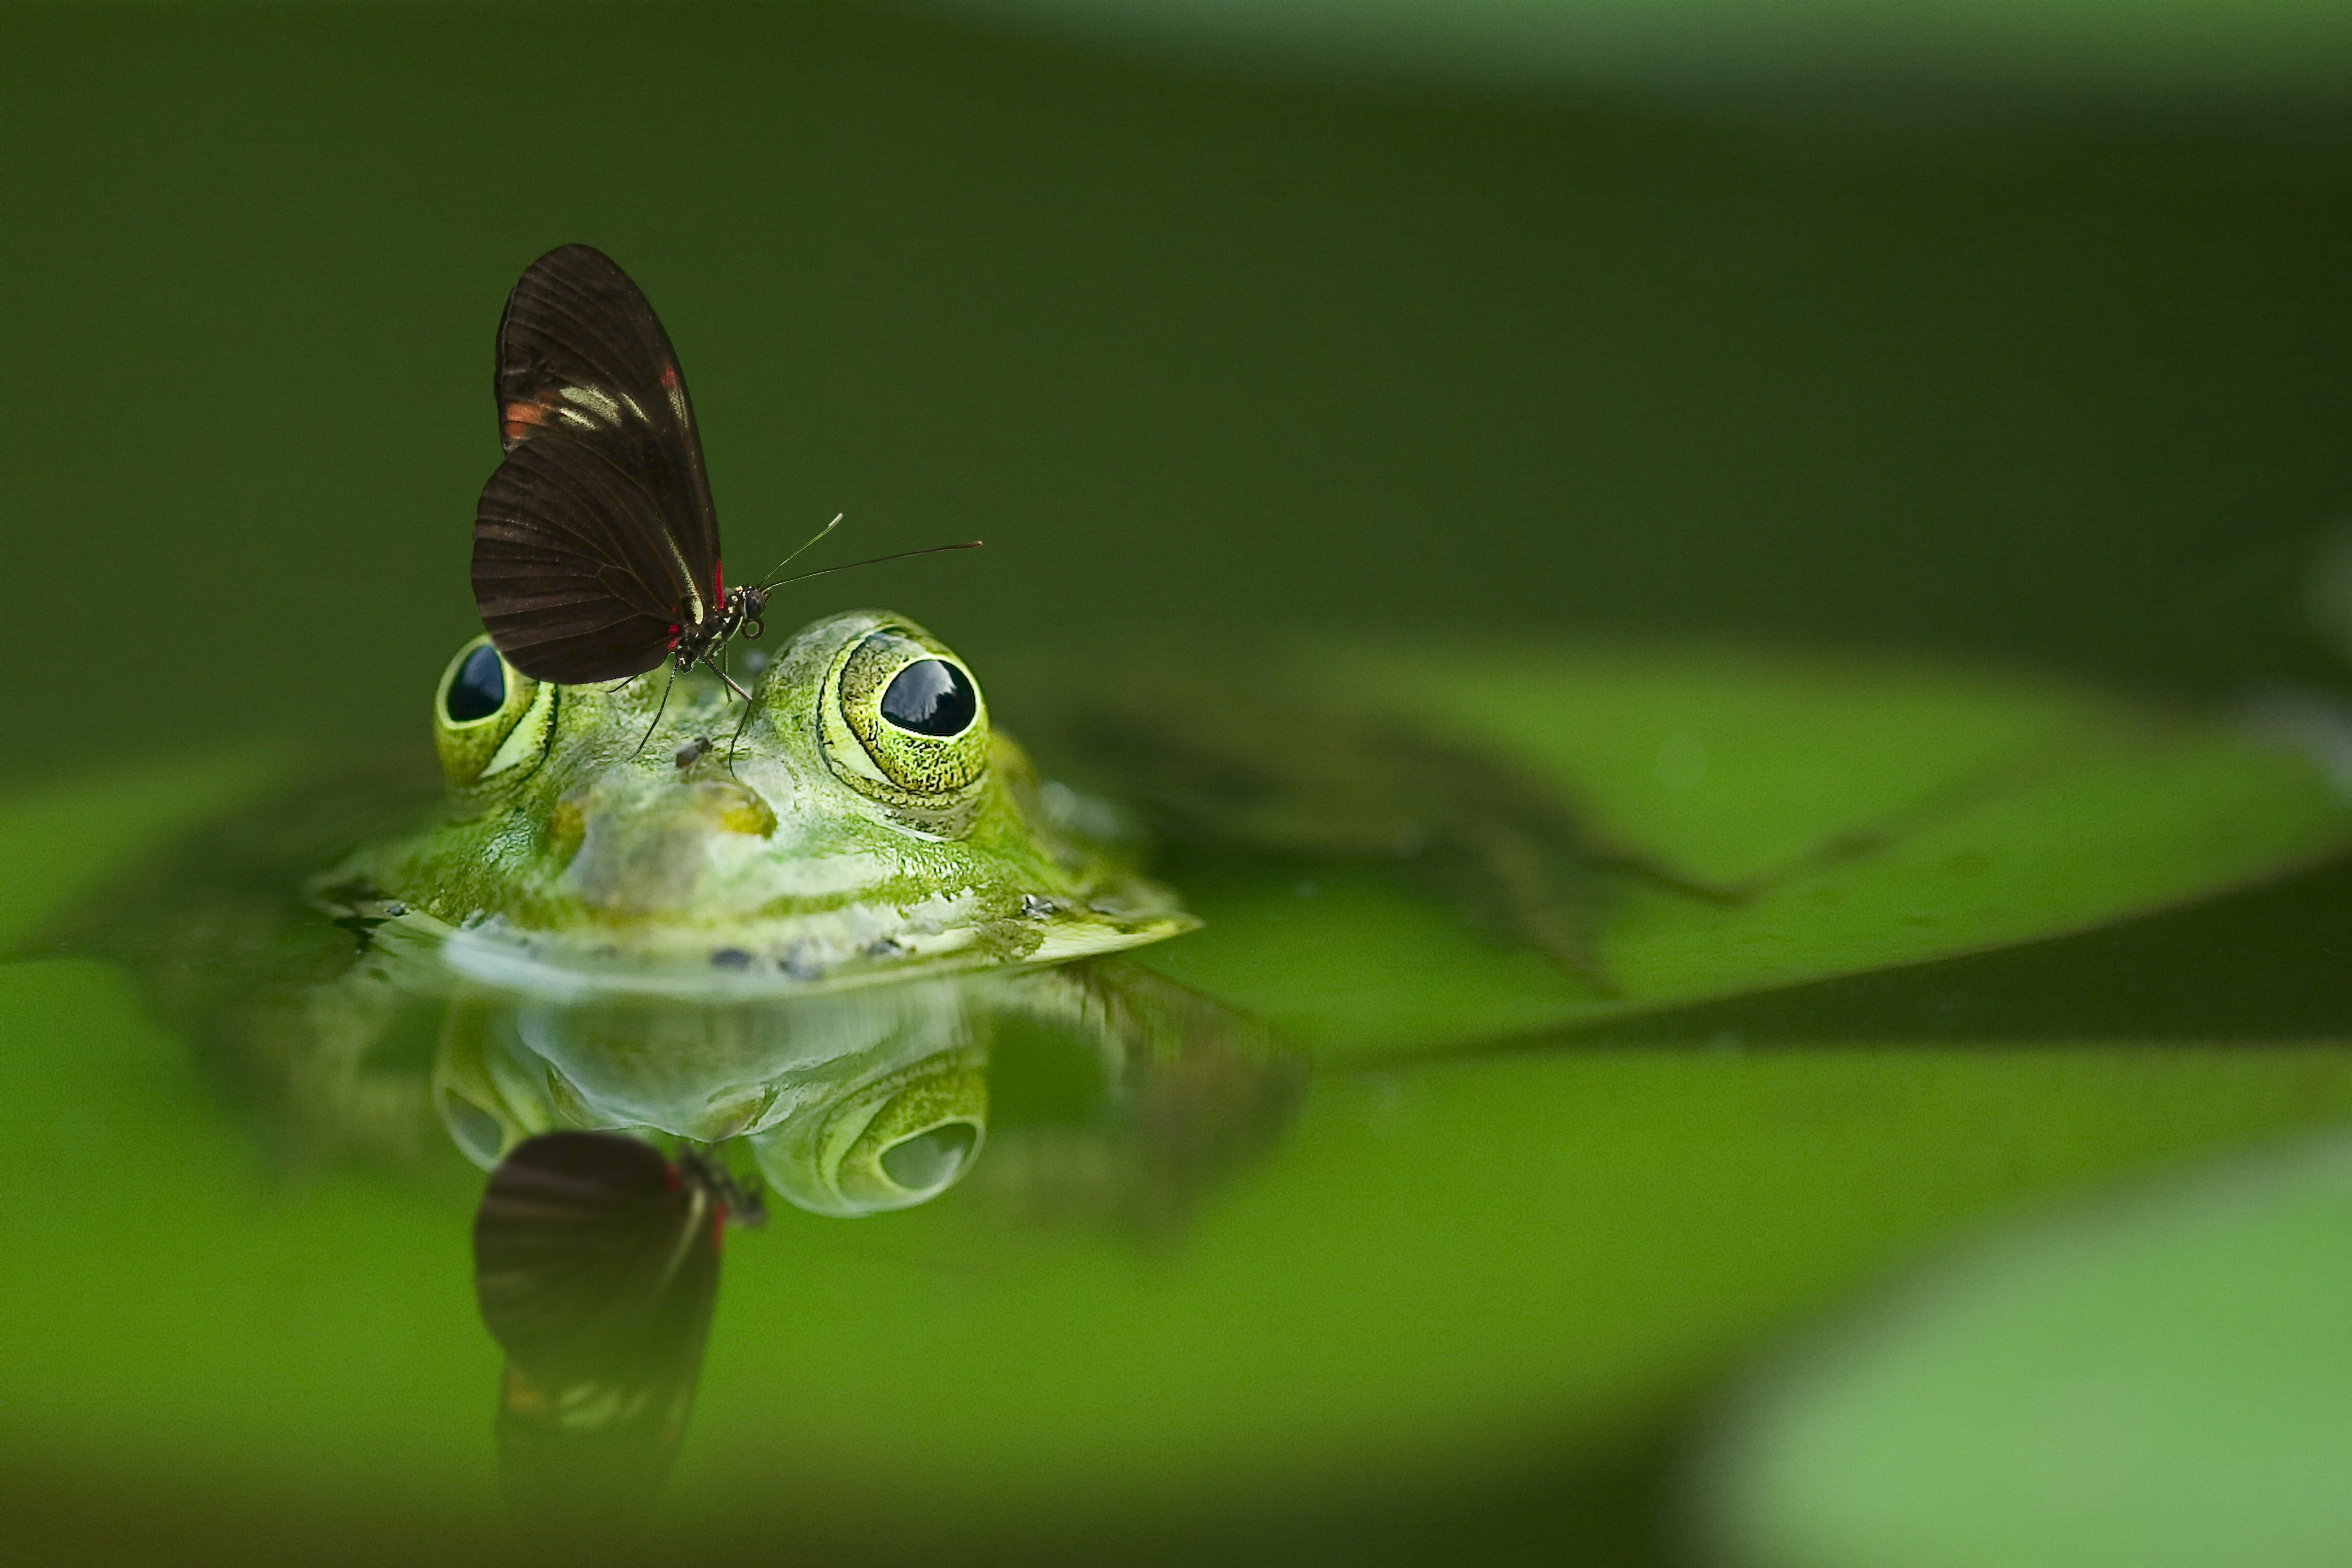 Pictured - A long wing butterfly on top of a frog's head soaking on water   Source: Pexels